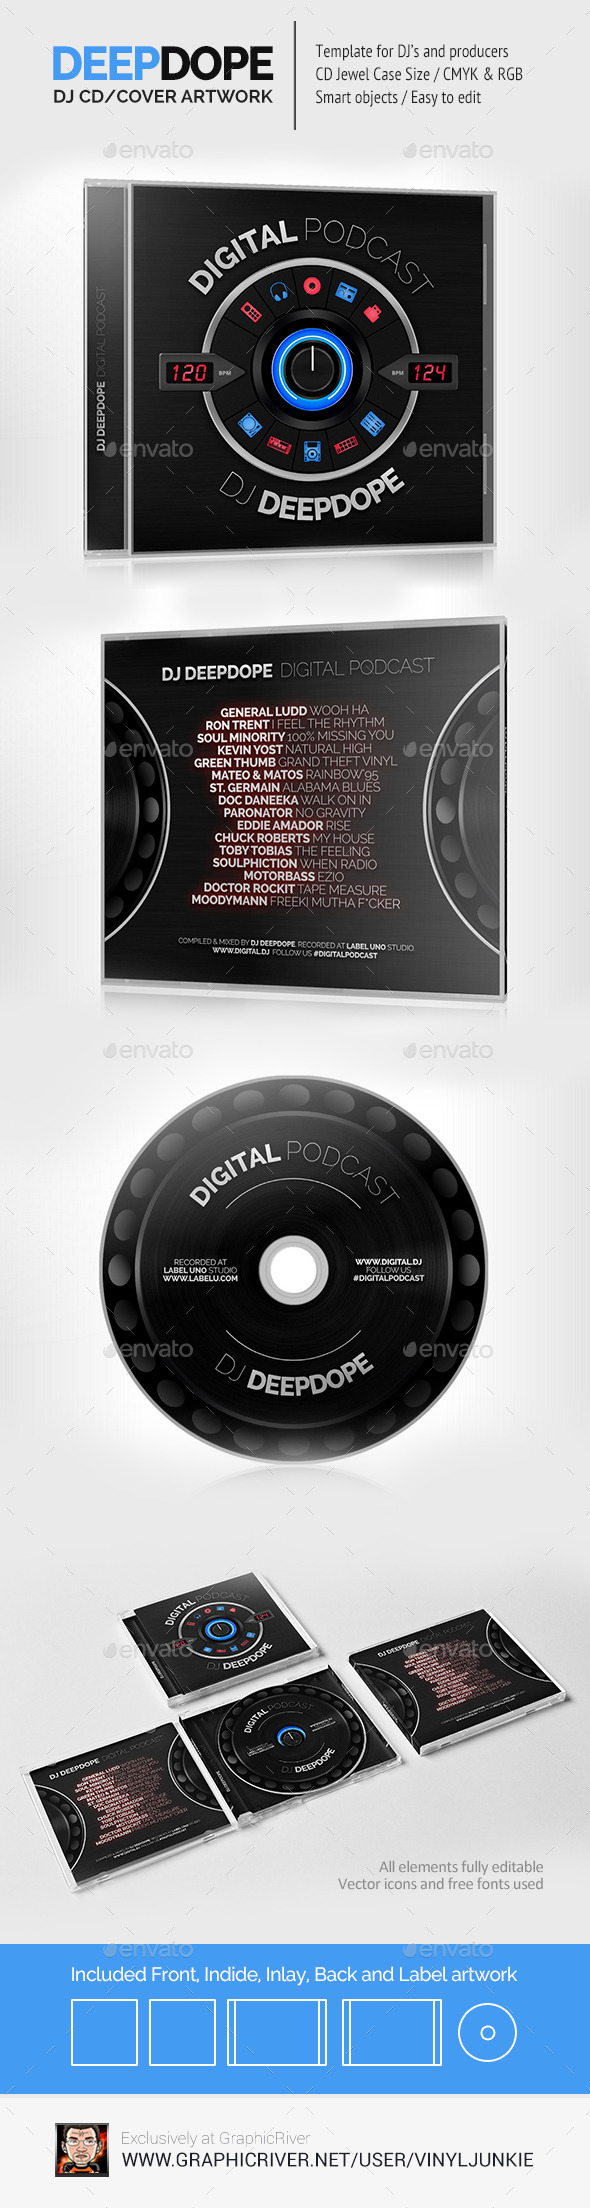 GraphicRiver DeepDope DJ Mix CD Cover Artwork PSD 9642027